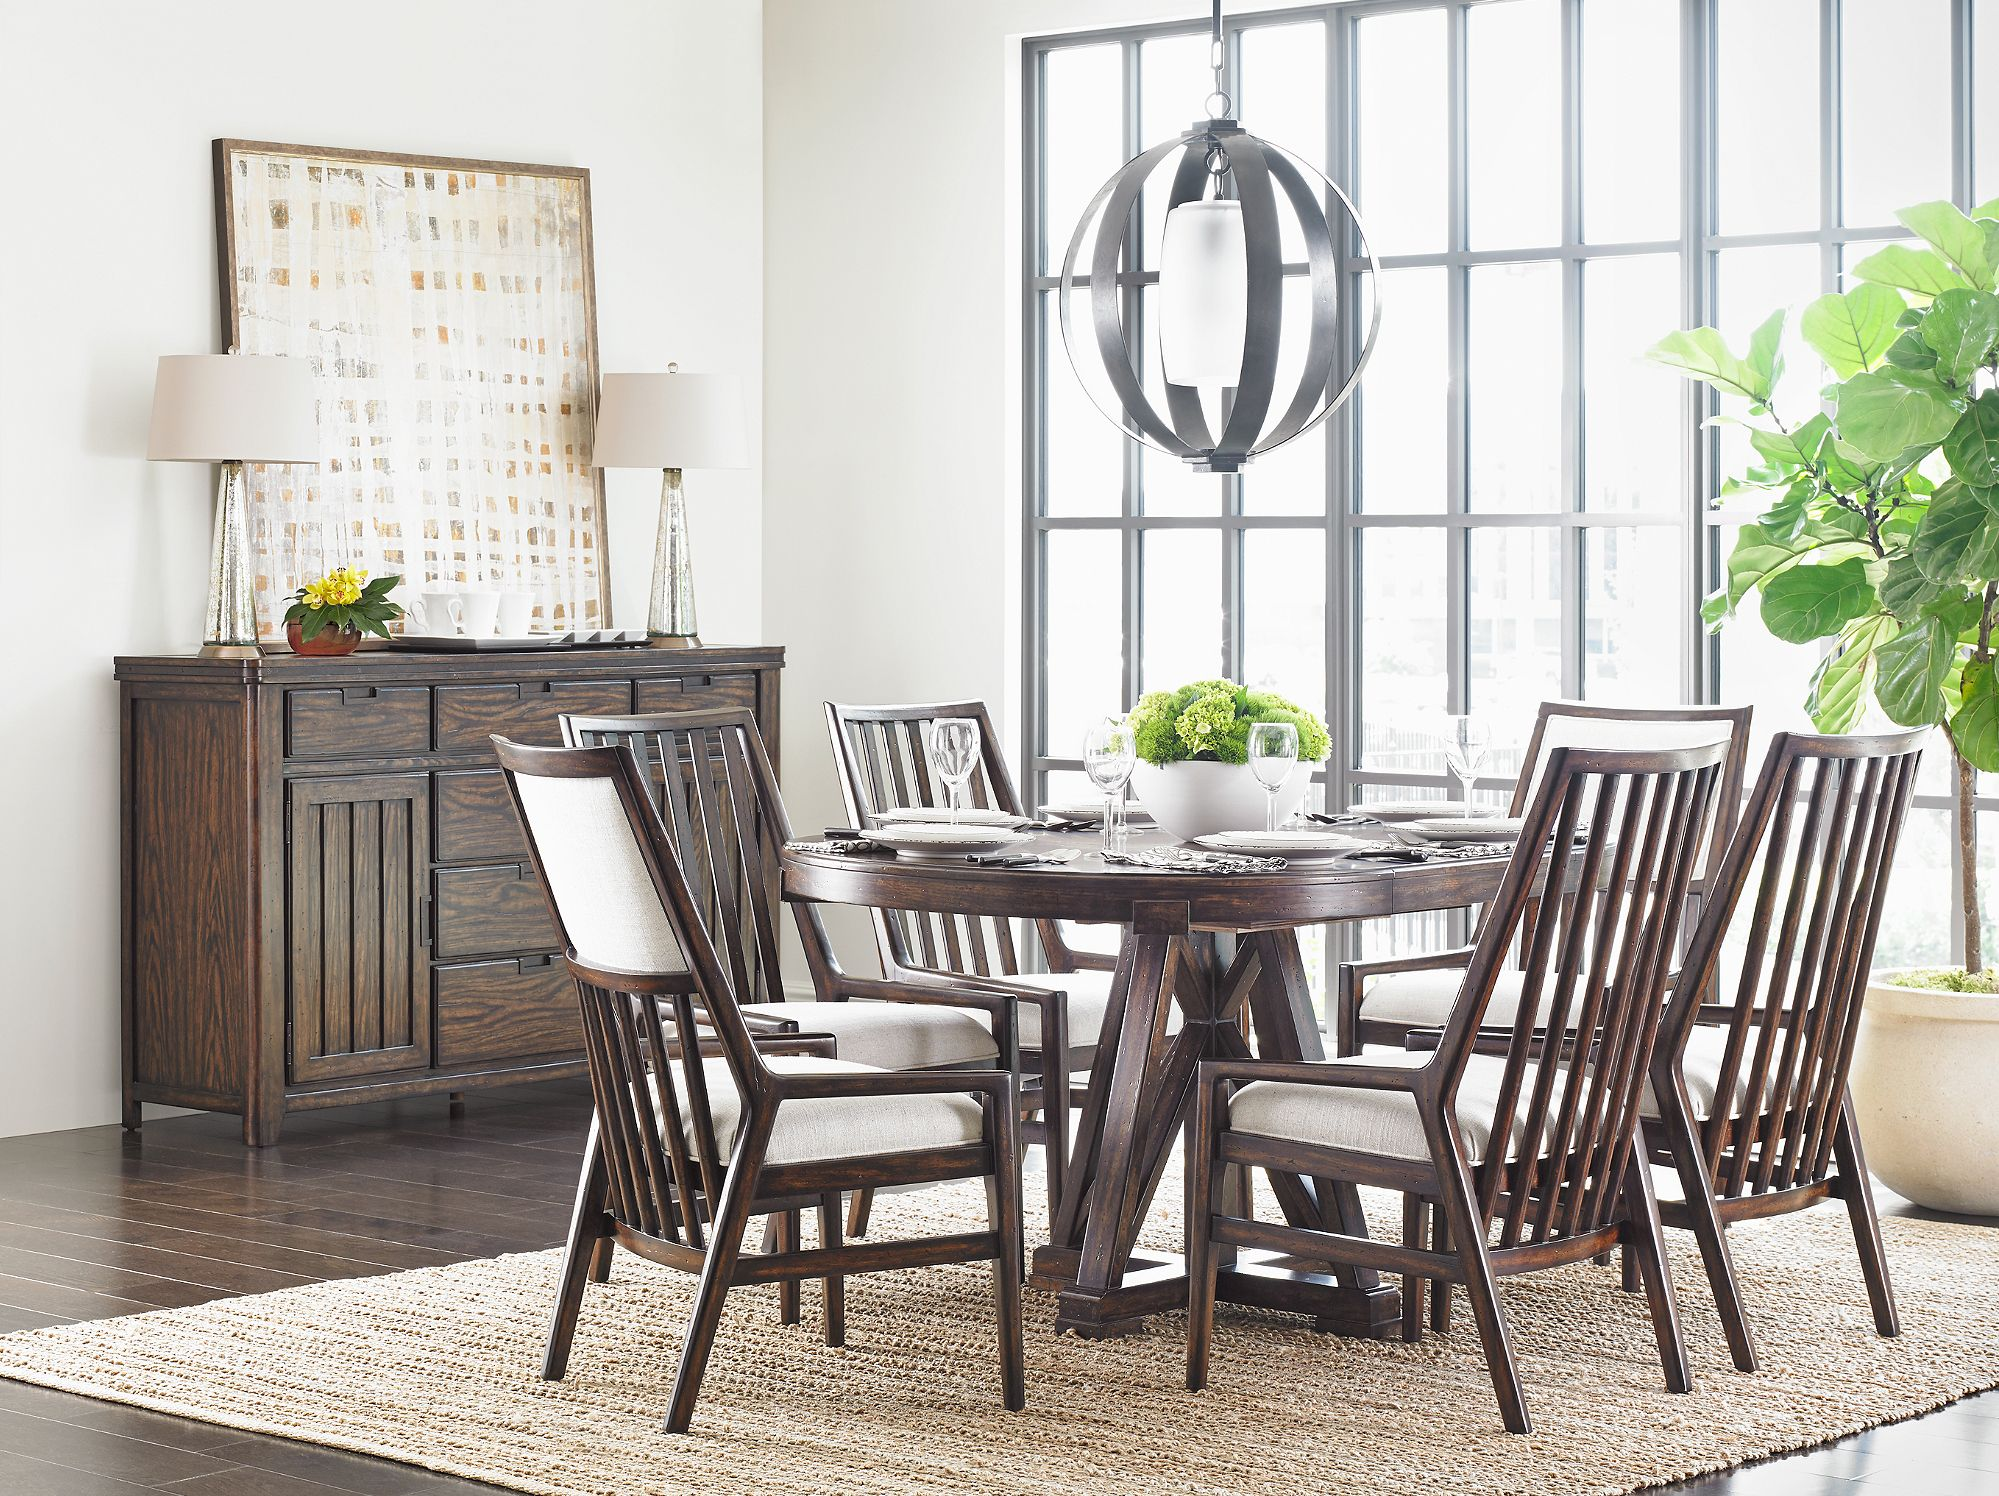 The Textural Beauty Of The Oak Is The Distinguishing Feature Of Stunning Stanley Furniture Dining Room Set Design Inspiration